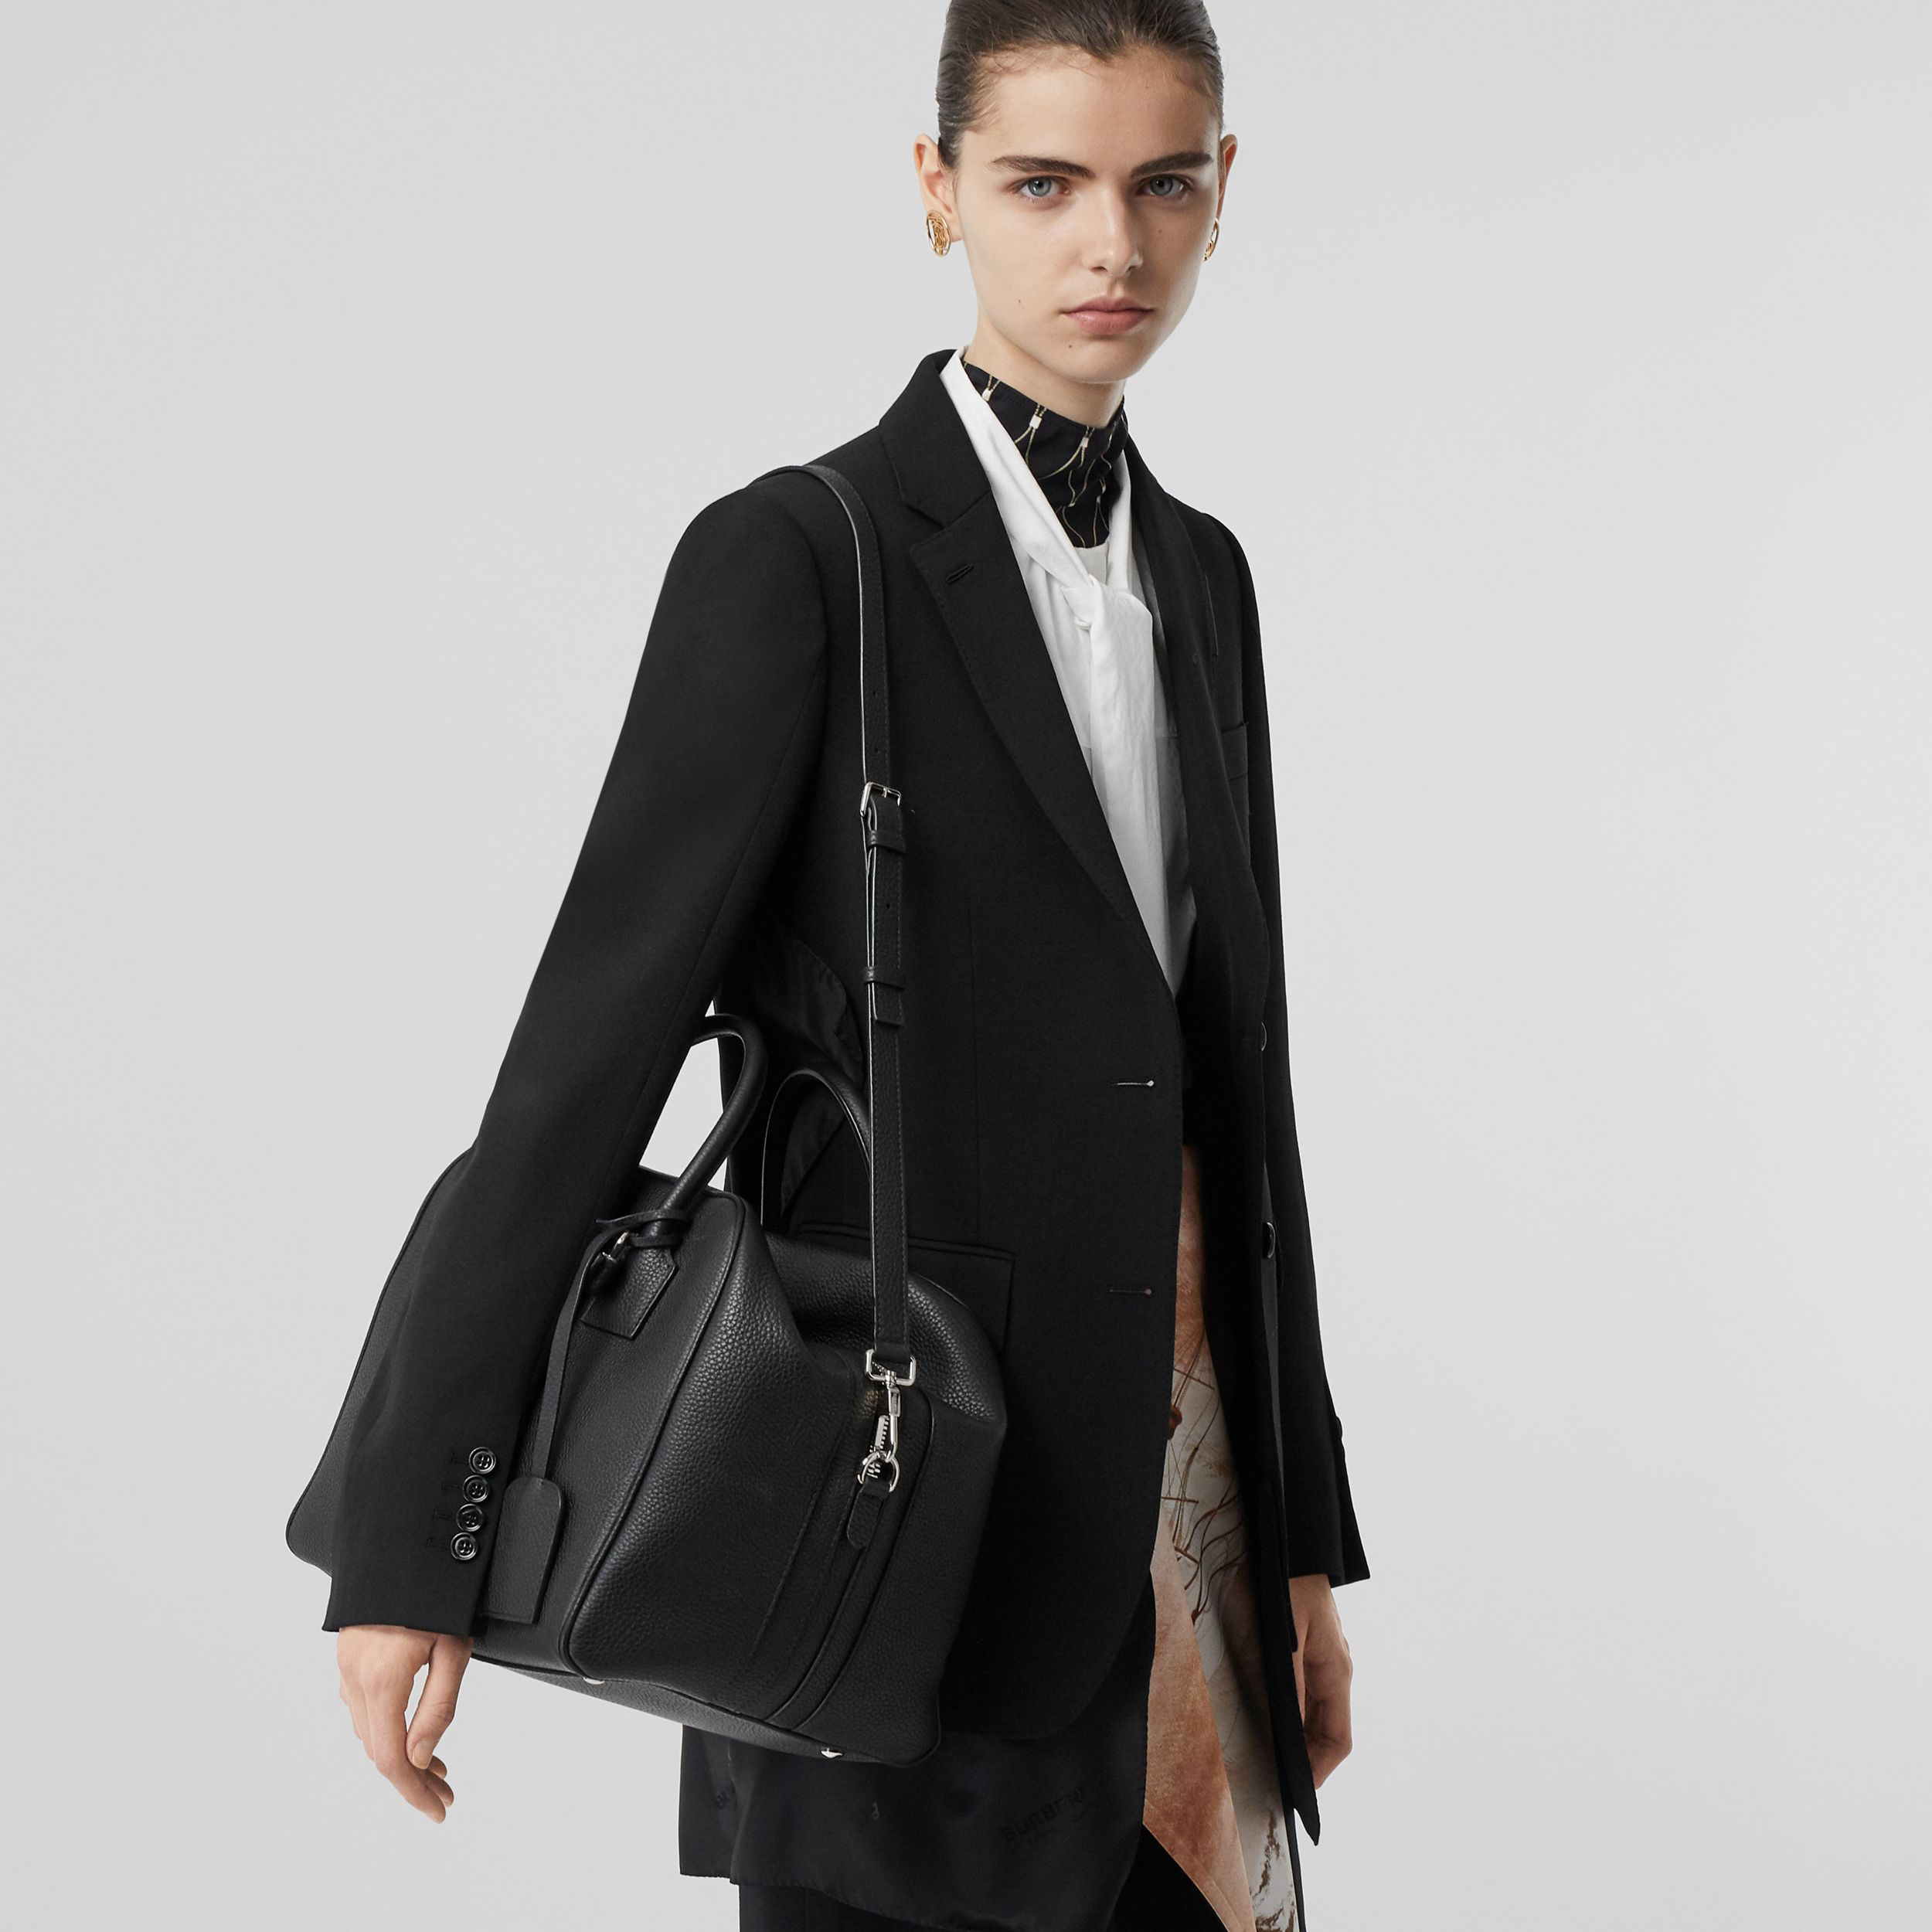 Medium Leather Cube Bag in Black - Women | Burberry United Kingdom - 3